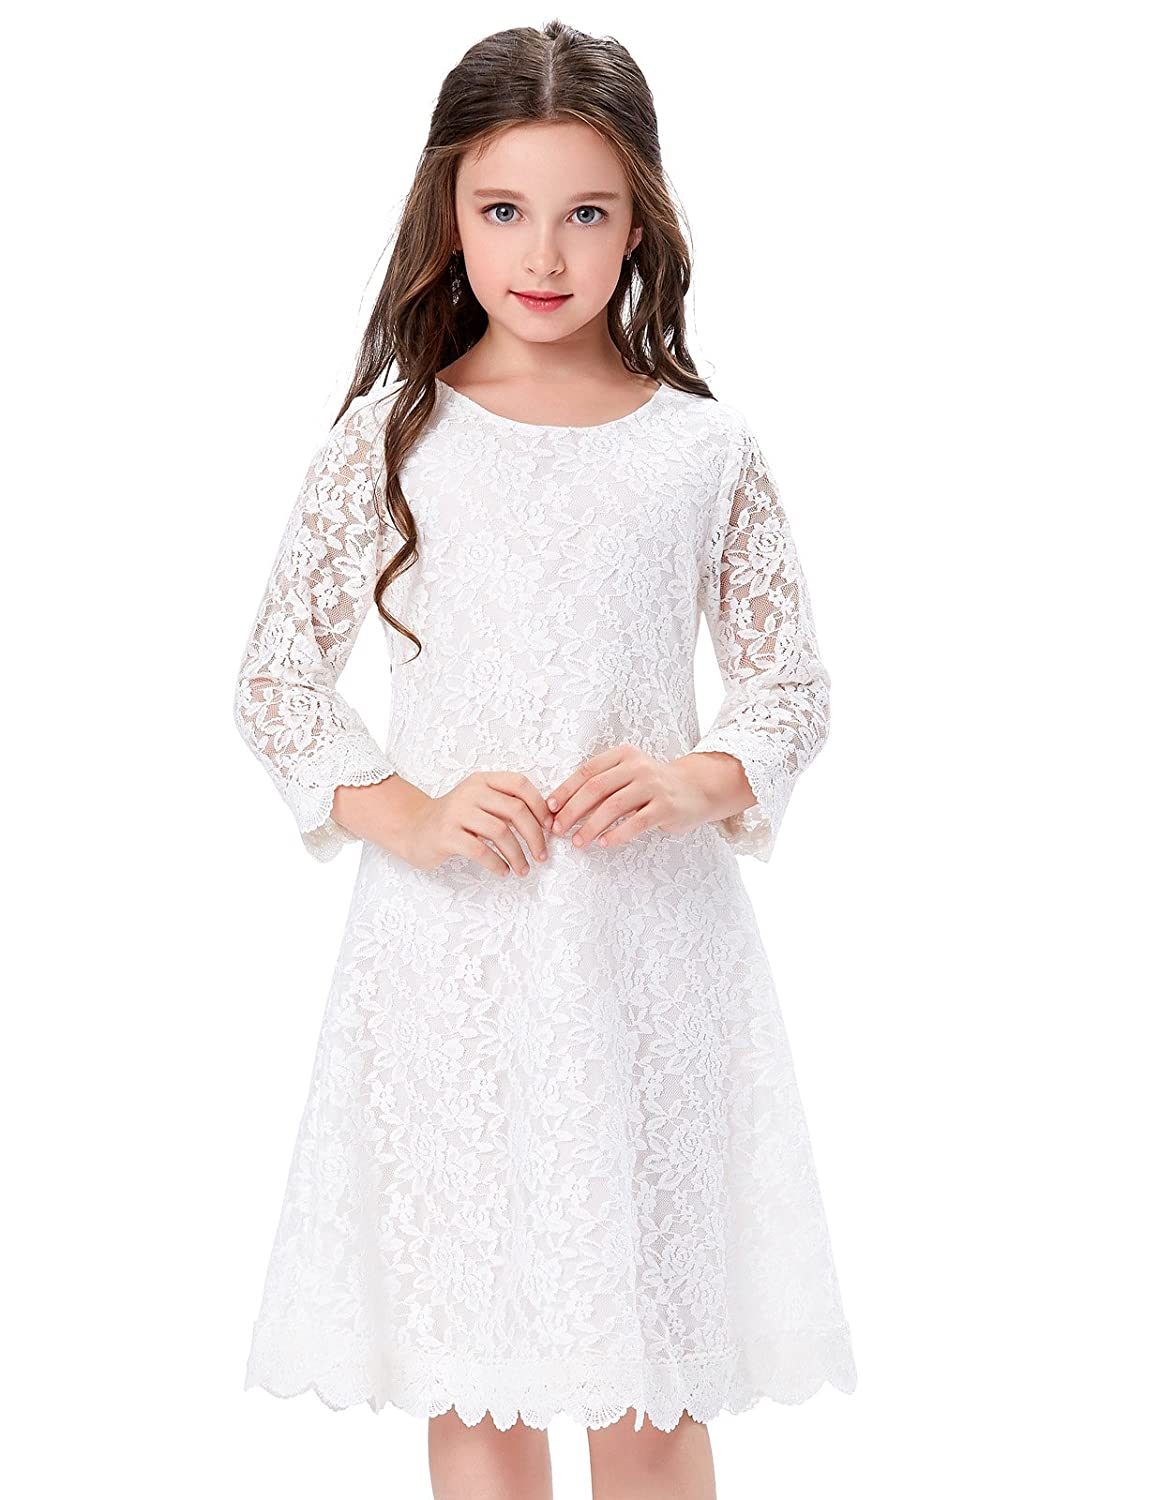 8dd86fb260f Amazon.com  GRACE KARIN Girls Shift Flower Lace Dresses with Sleeves   Clothing